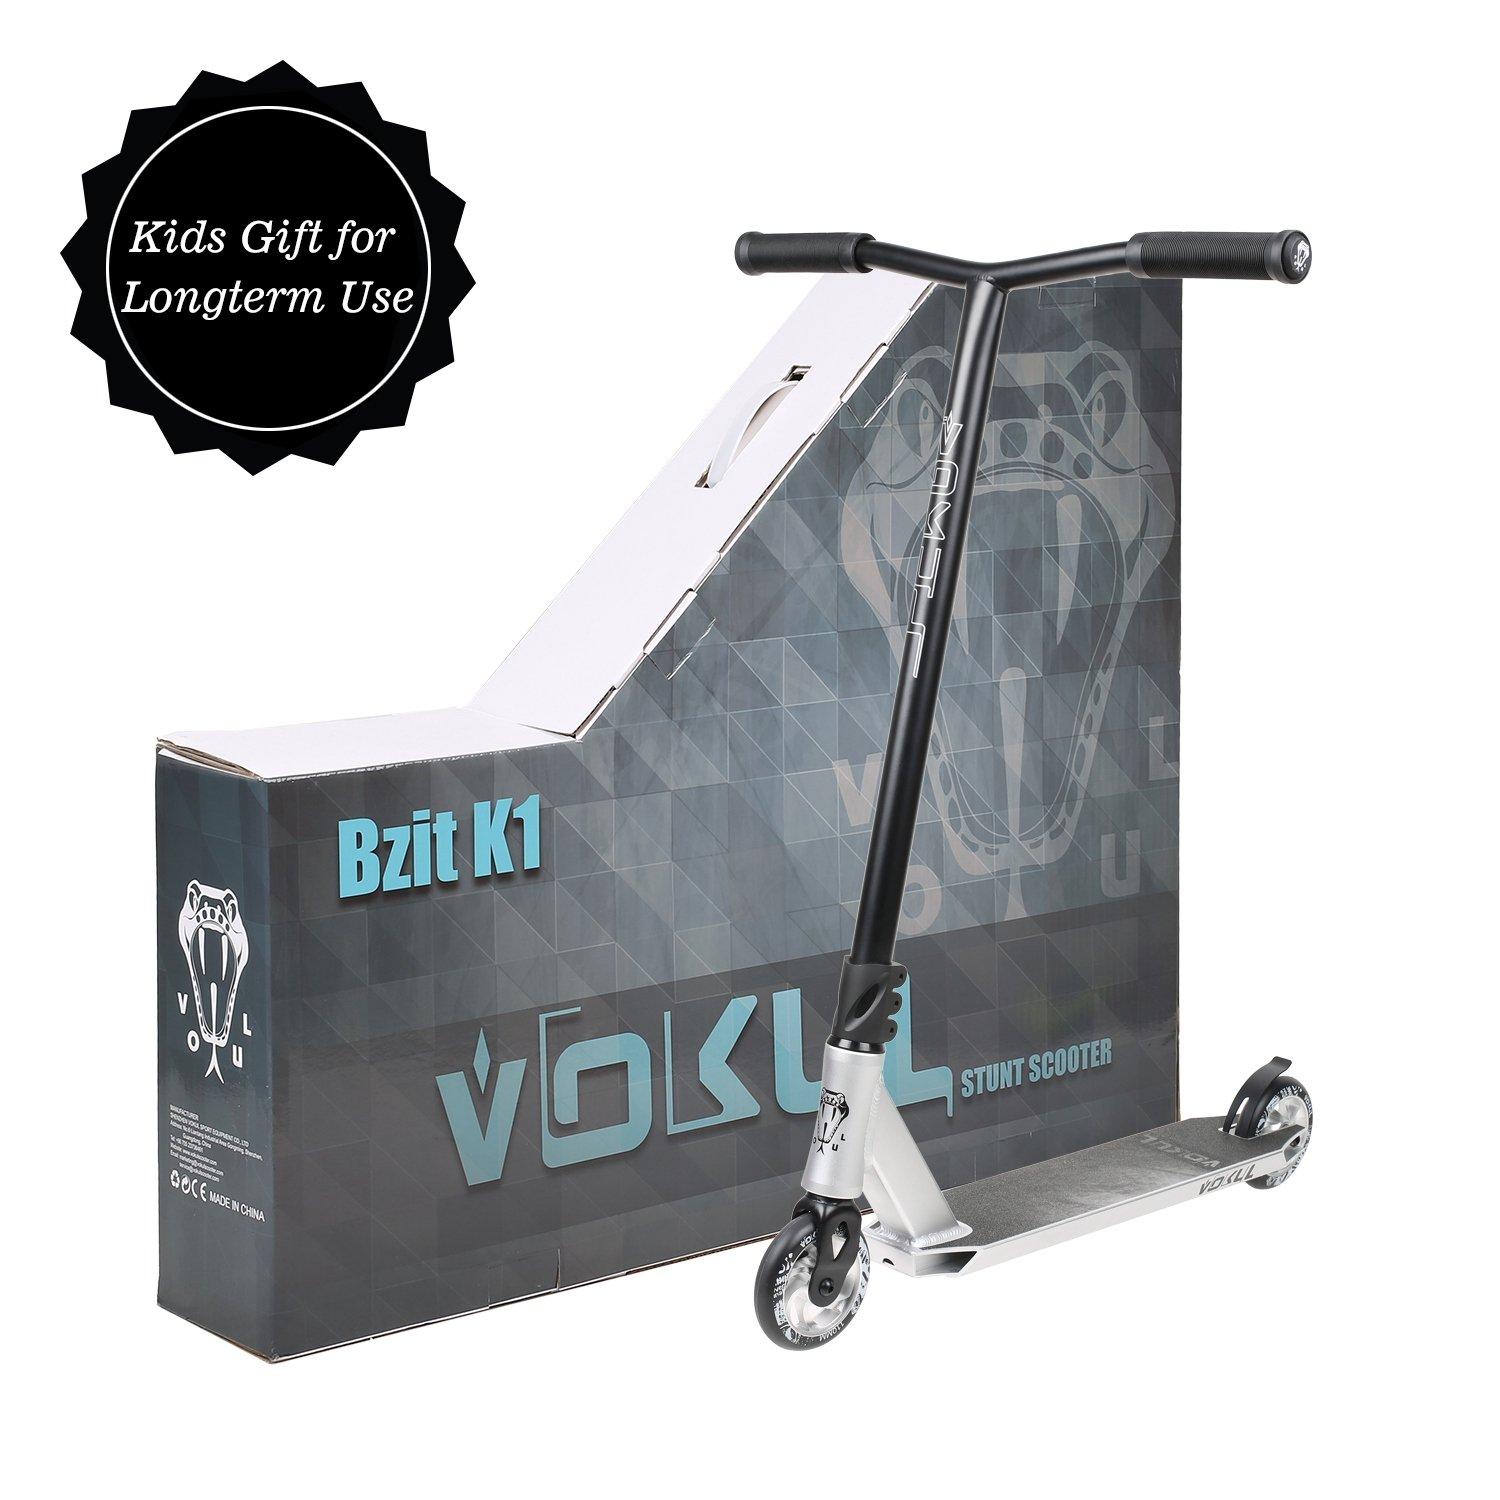 VOKUL K1 Complete Pro Scooter for Kids Boys Girls Teens Adults Up 7 Years - Freestyle Tricks Pro Stunt Scooter with 110mm Metal Wheels - High Performance Gift for Skatepark Street Tricks by VOKUL (Image #3)